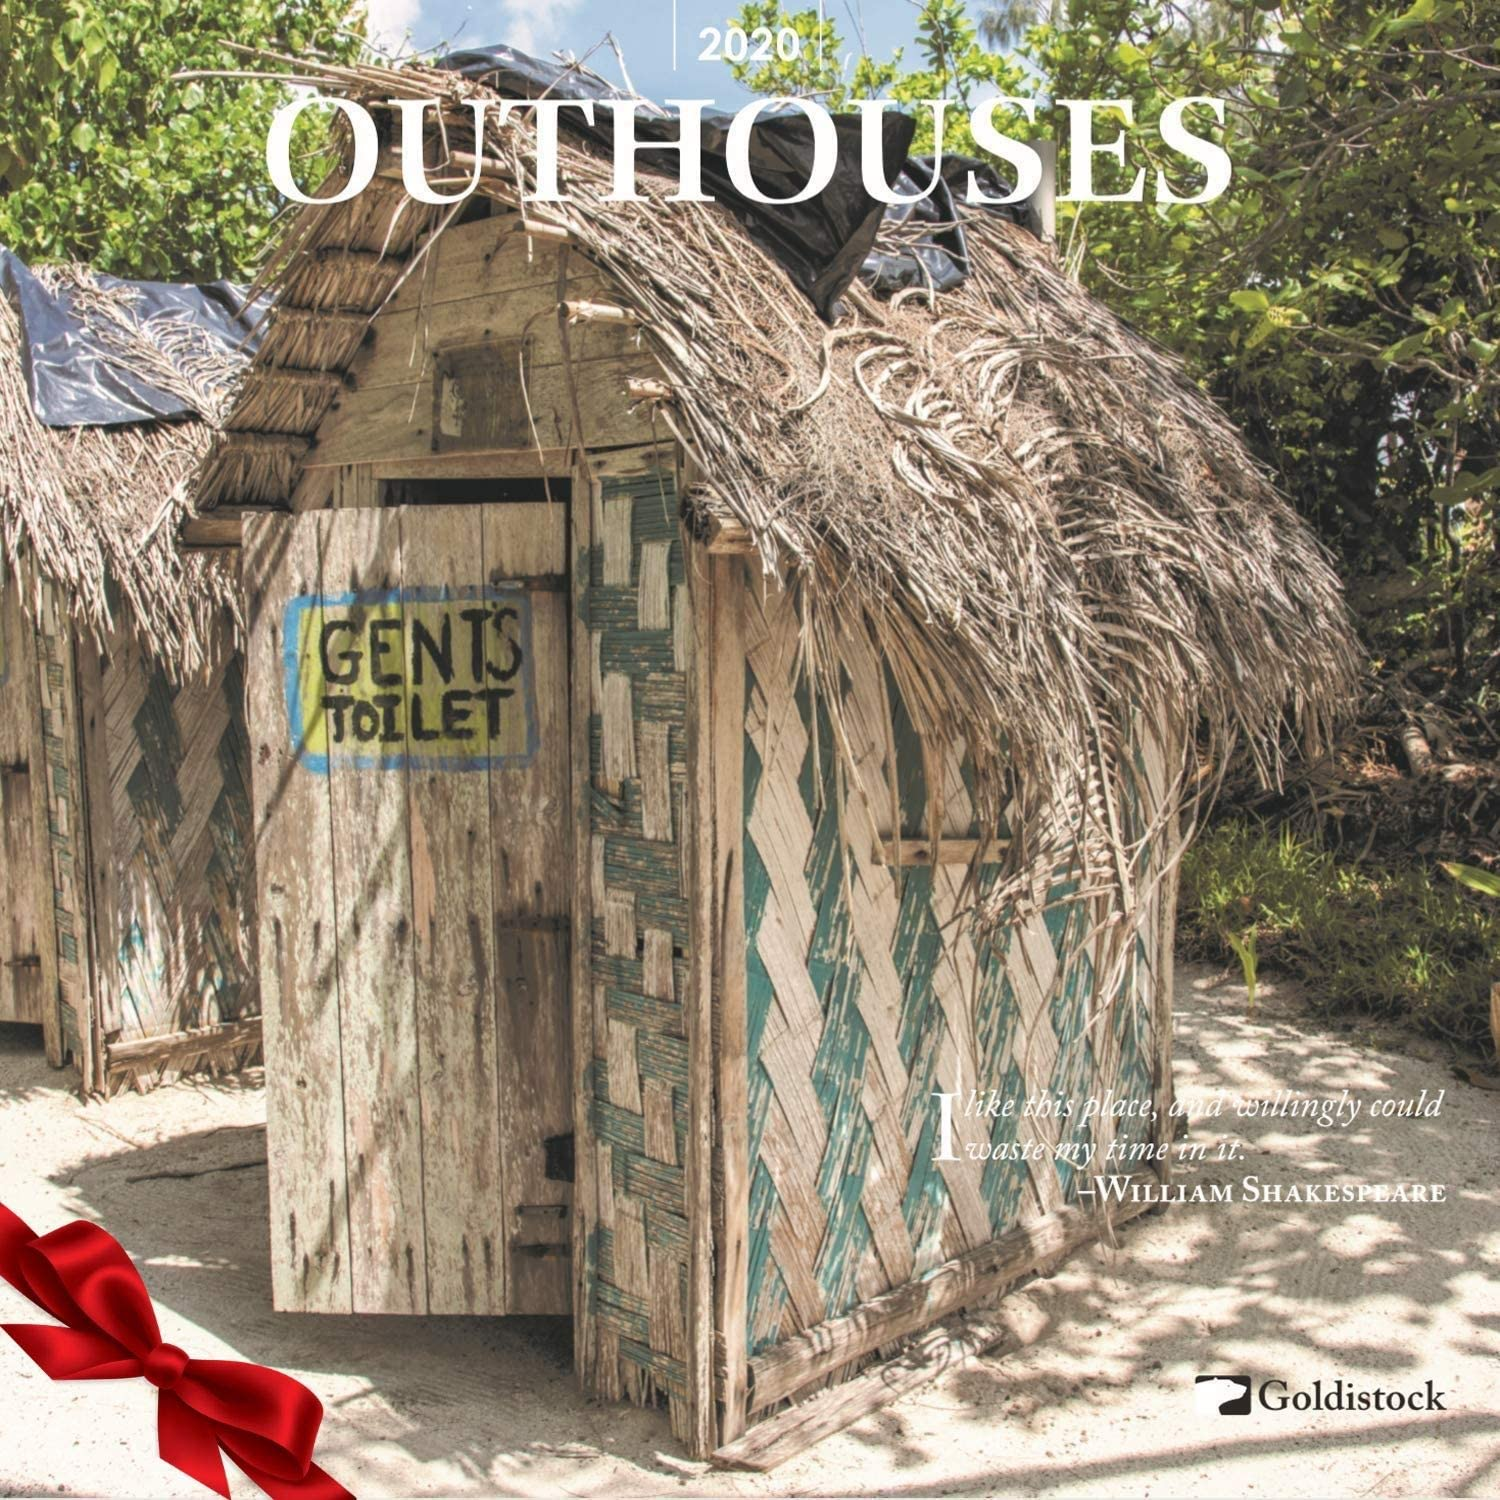 """Goldistock 2020 Large Wall Calendar -""""Outhouses"""" - 12"""" x 24"""" (Open) - Thick & Sturdy Paper"""